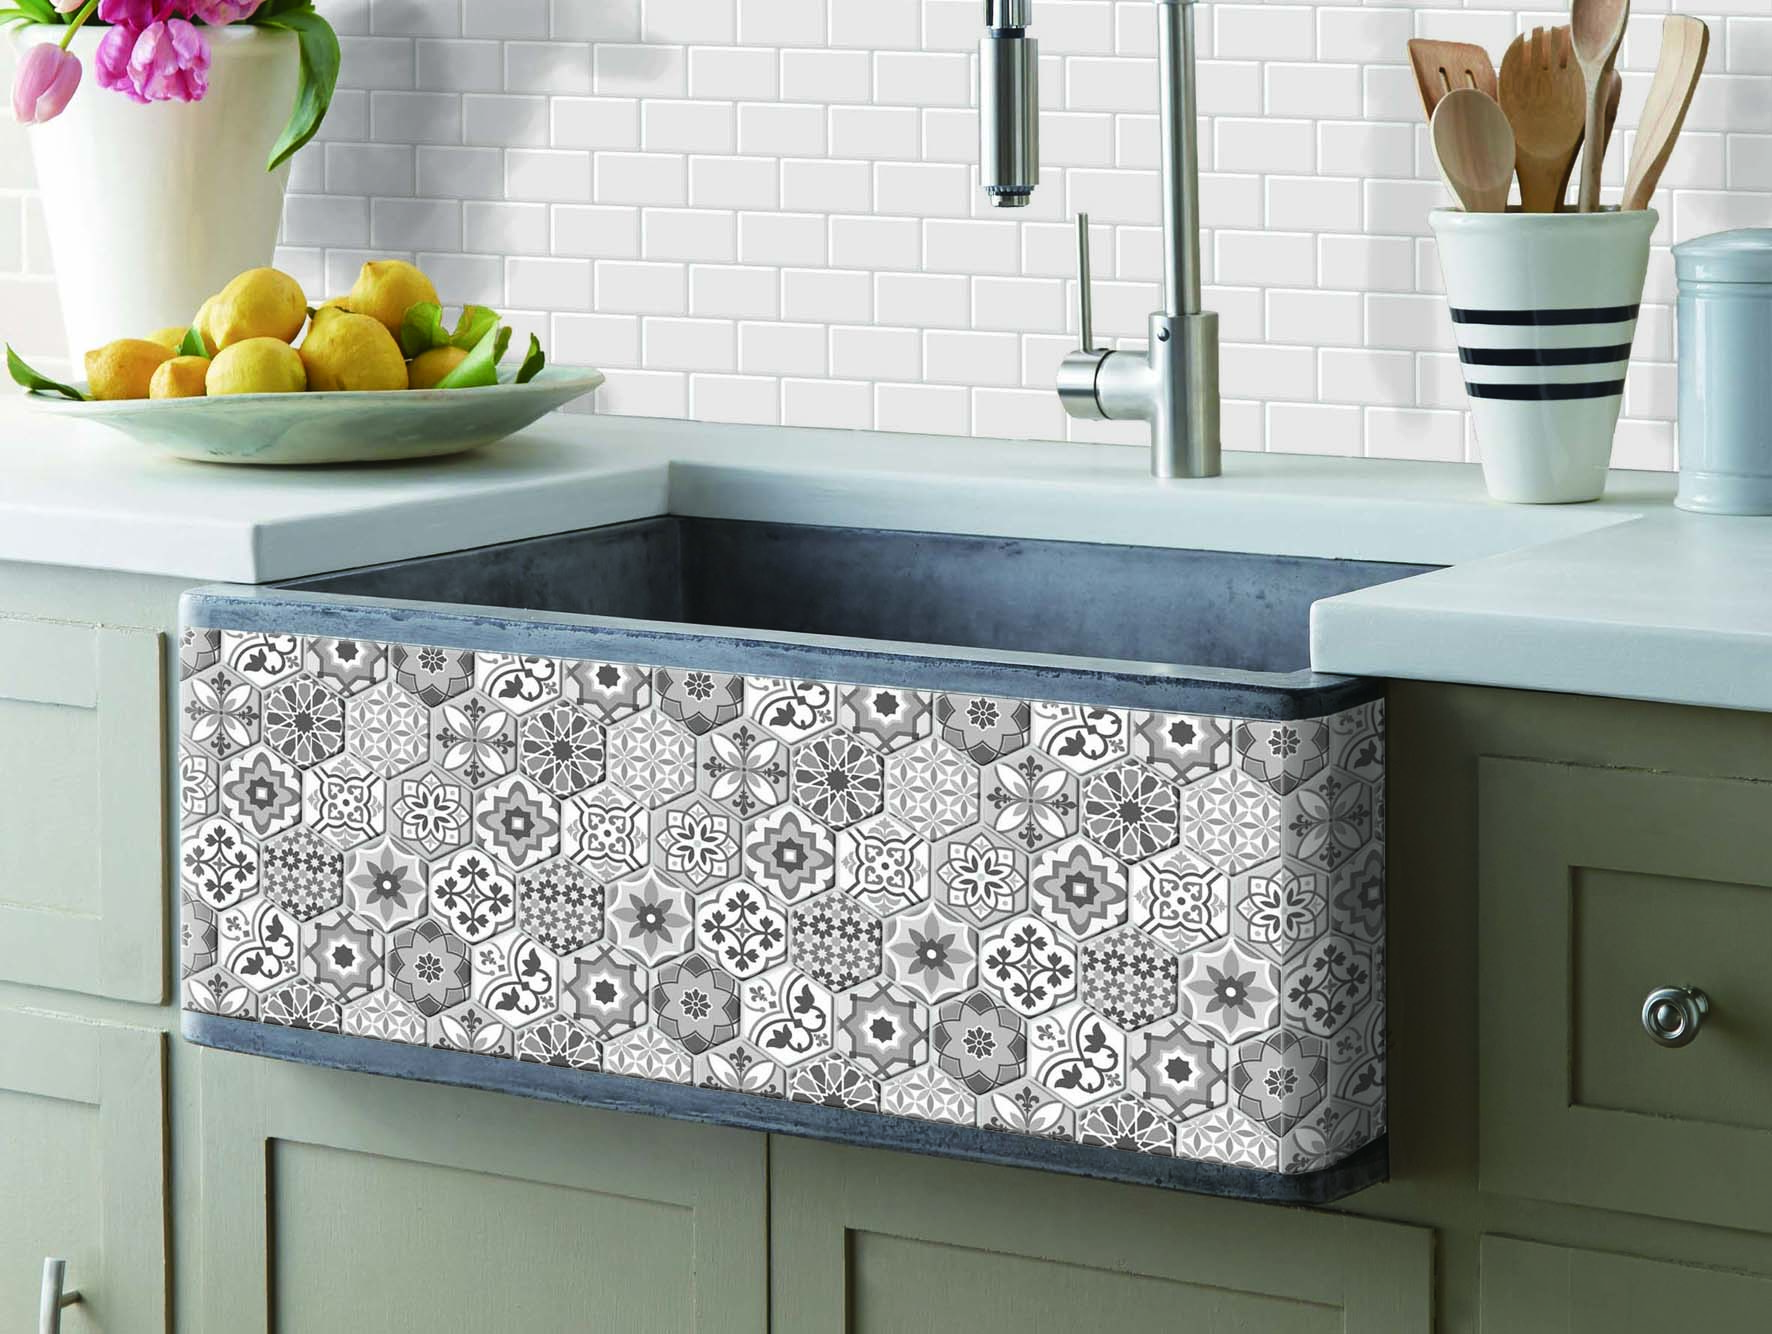 Peel And Stick Backsplash Tiles For Kitchen Talavera Mexican